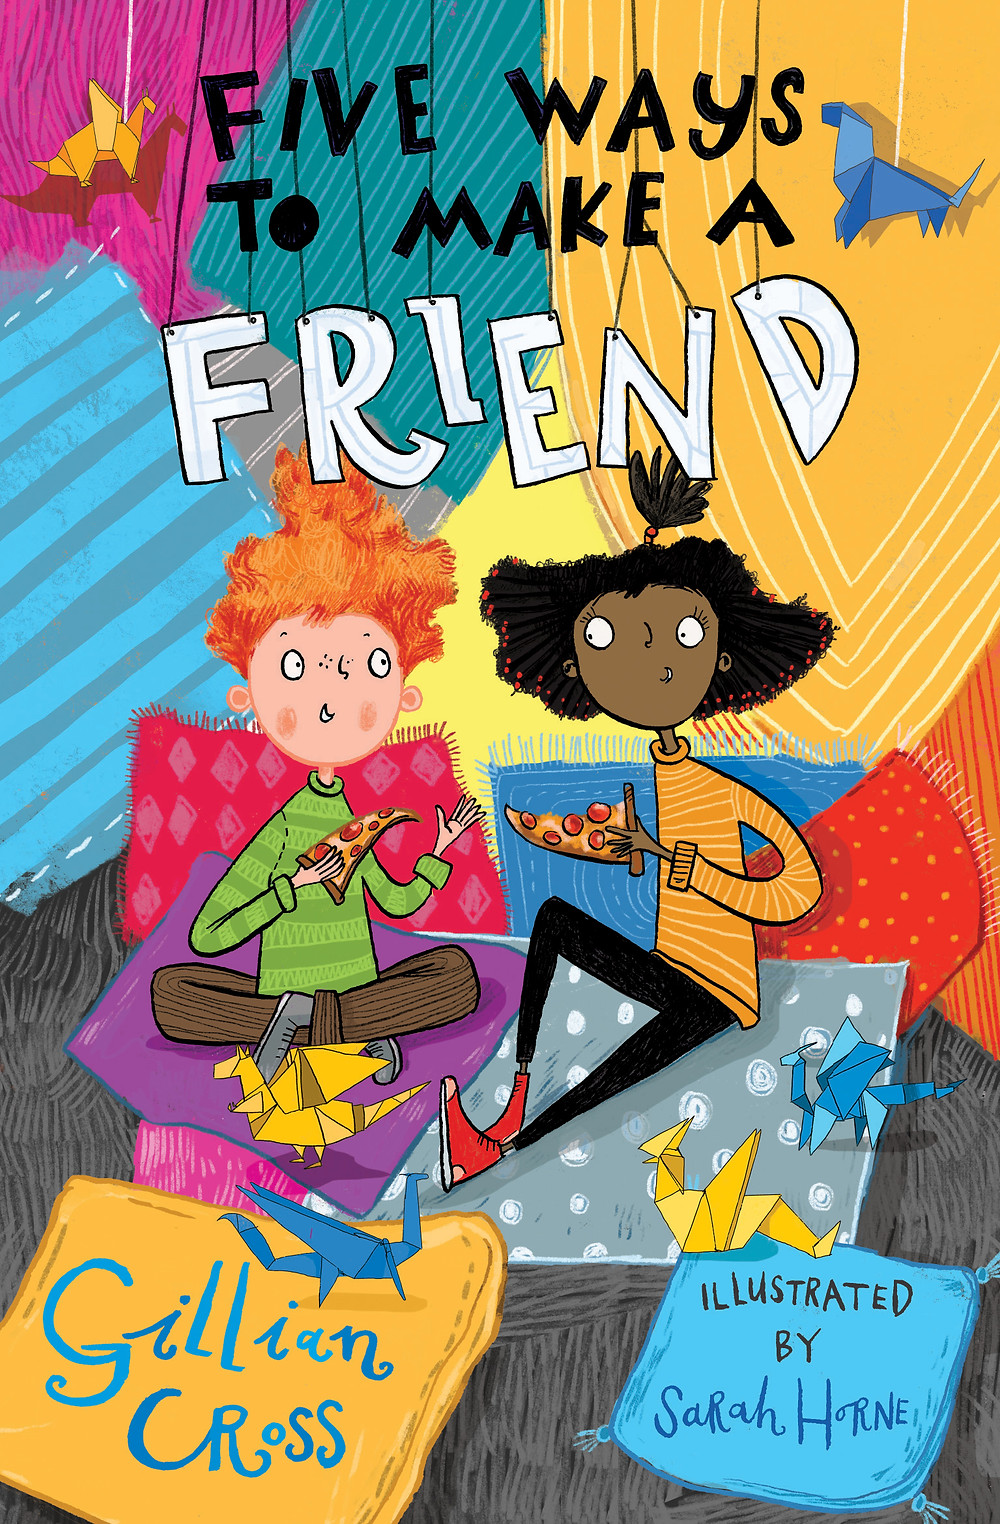 Five Ways To Make A Friend, a children's book about young friendships and relationships